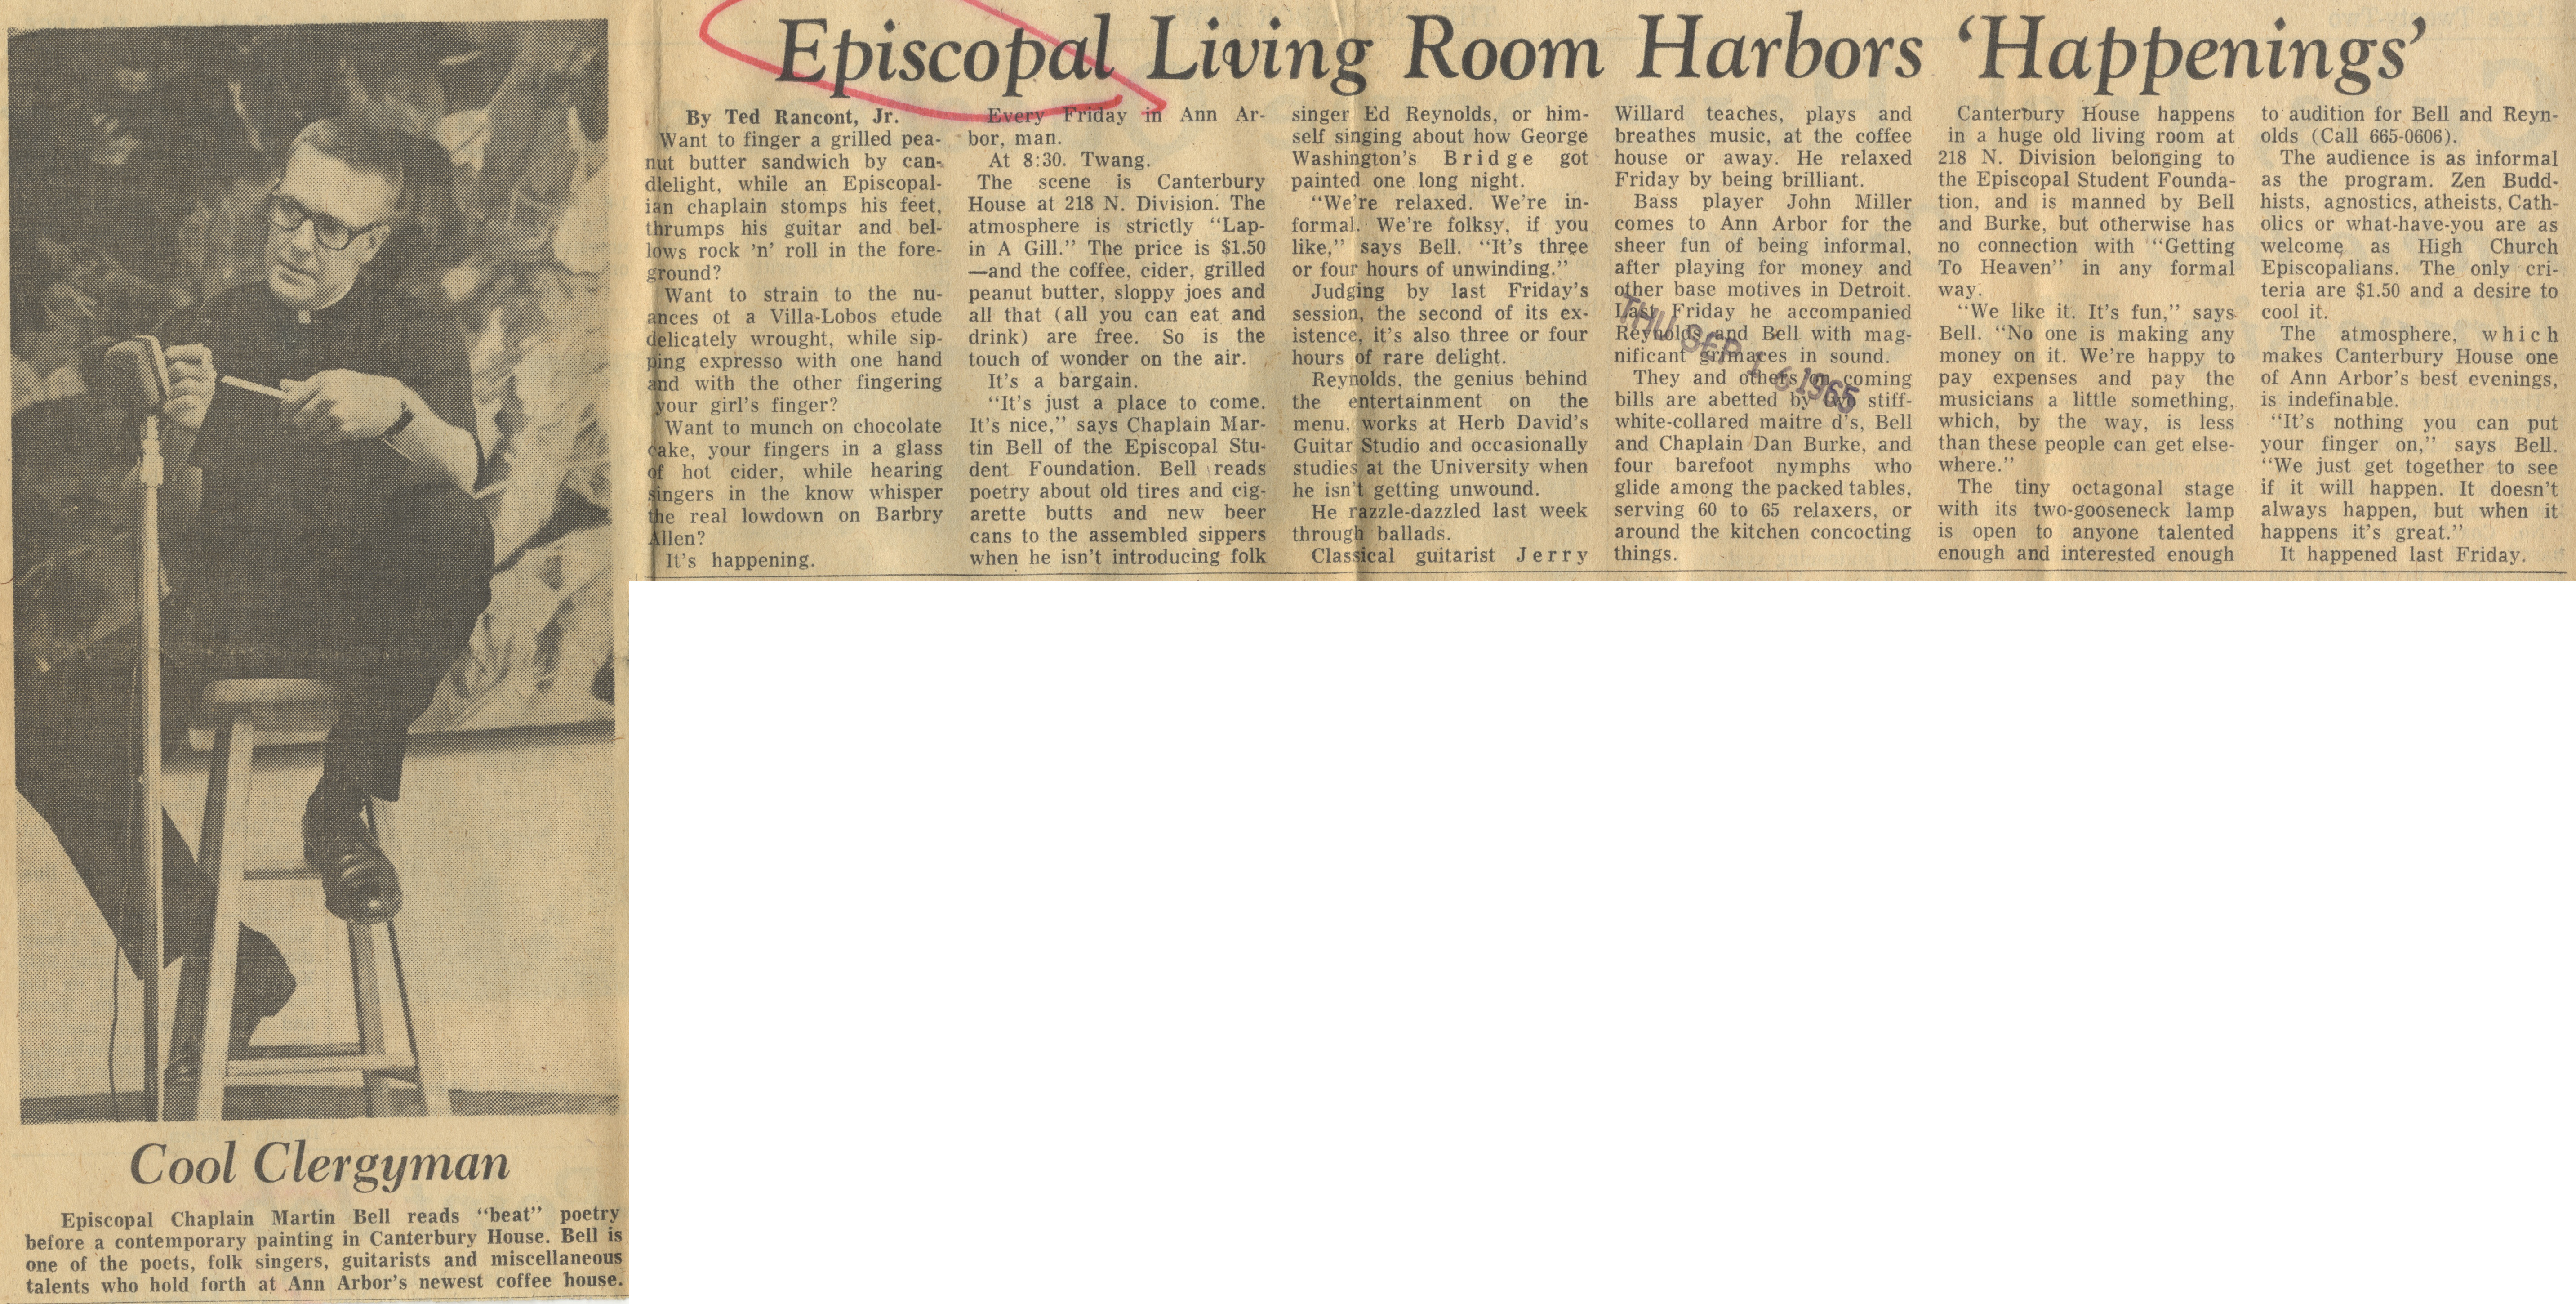 Episcopal Living Room Harbors 'Happenings' image